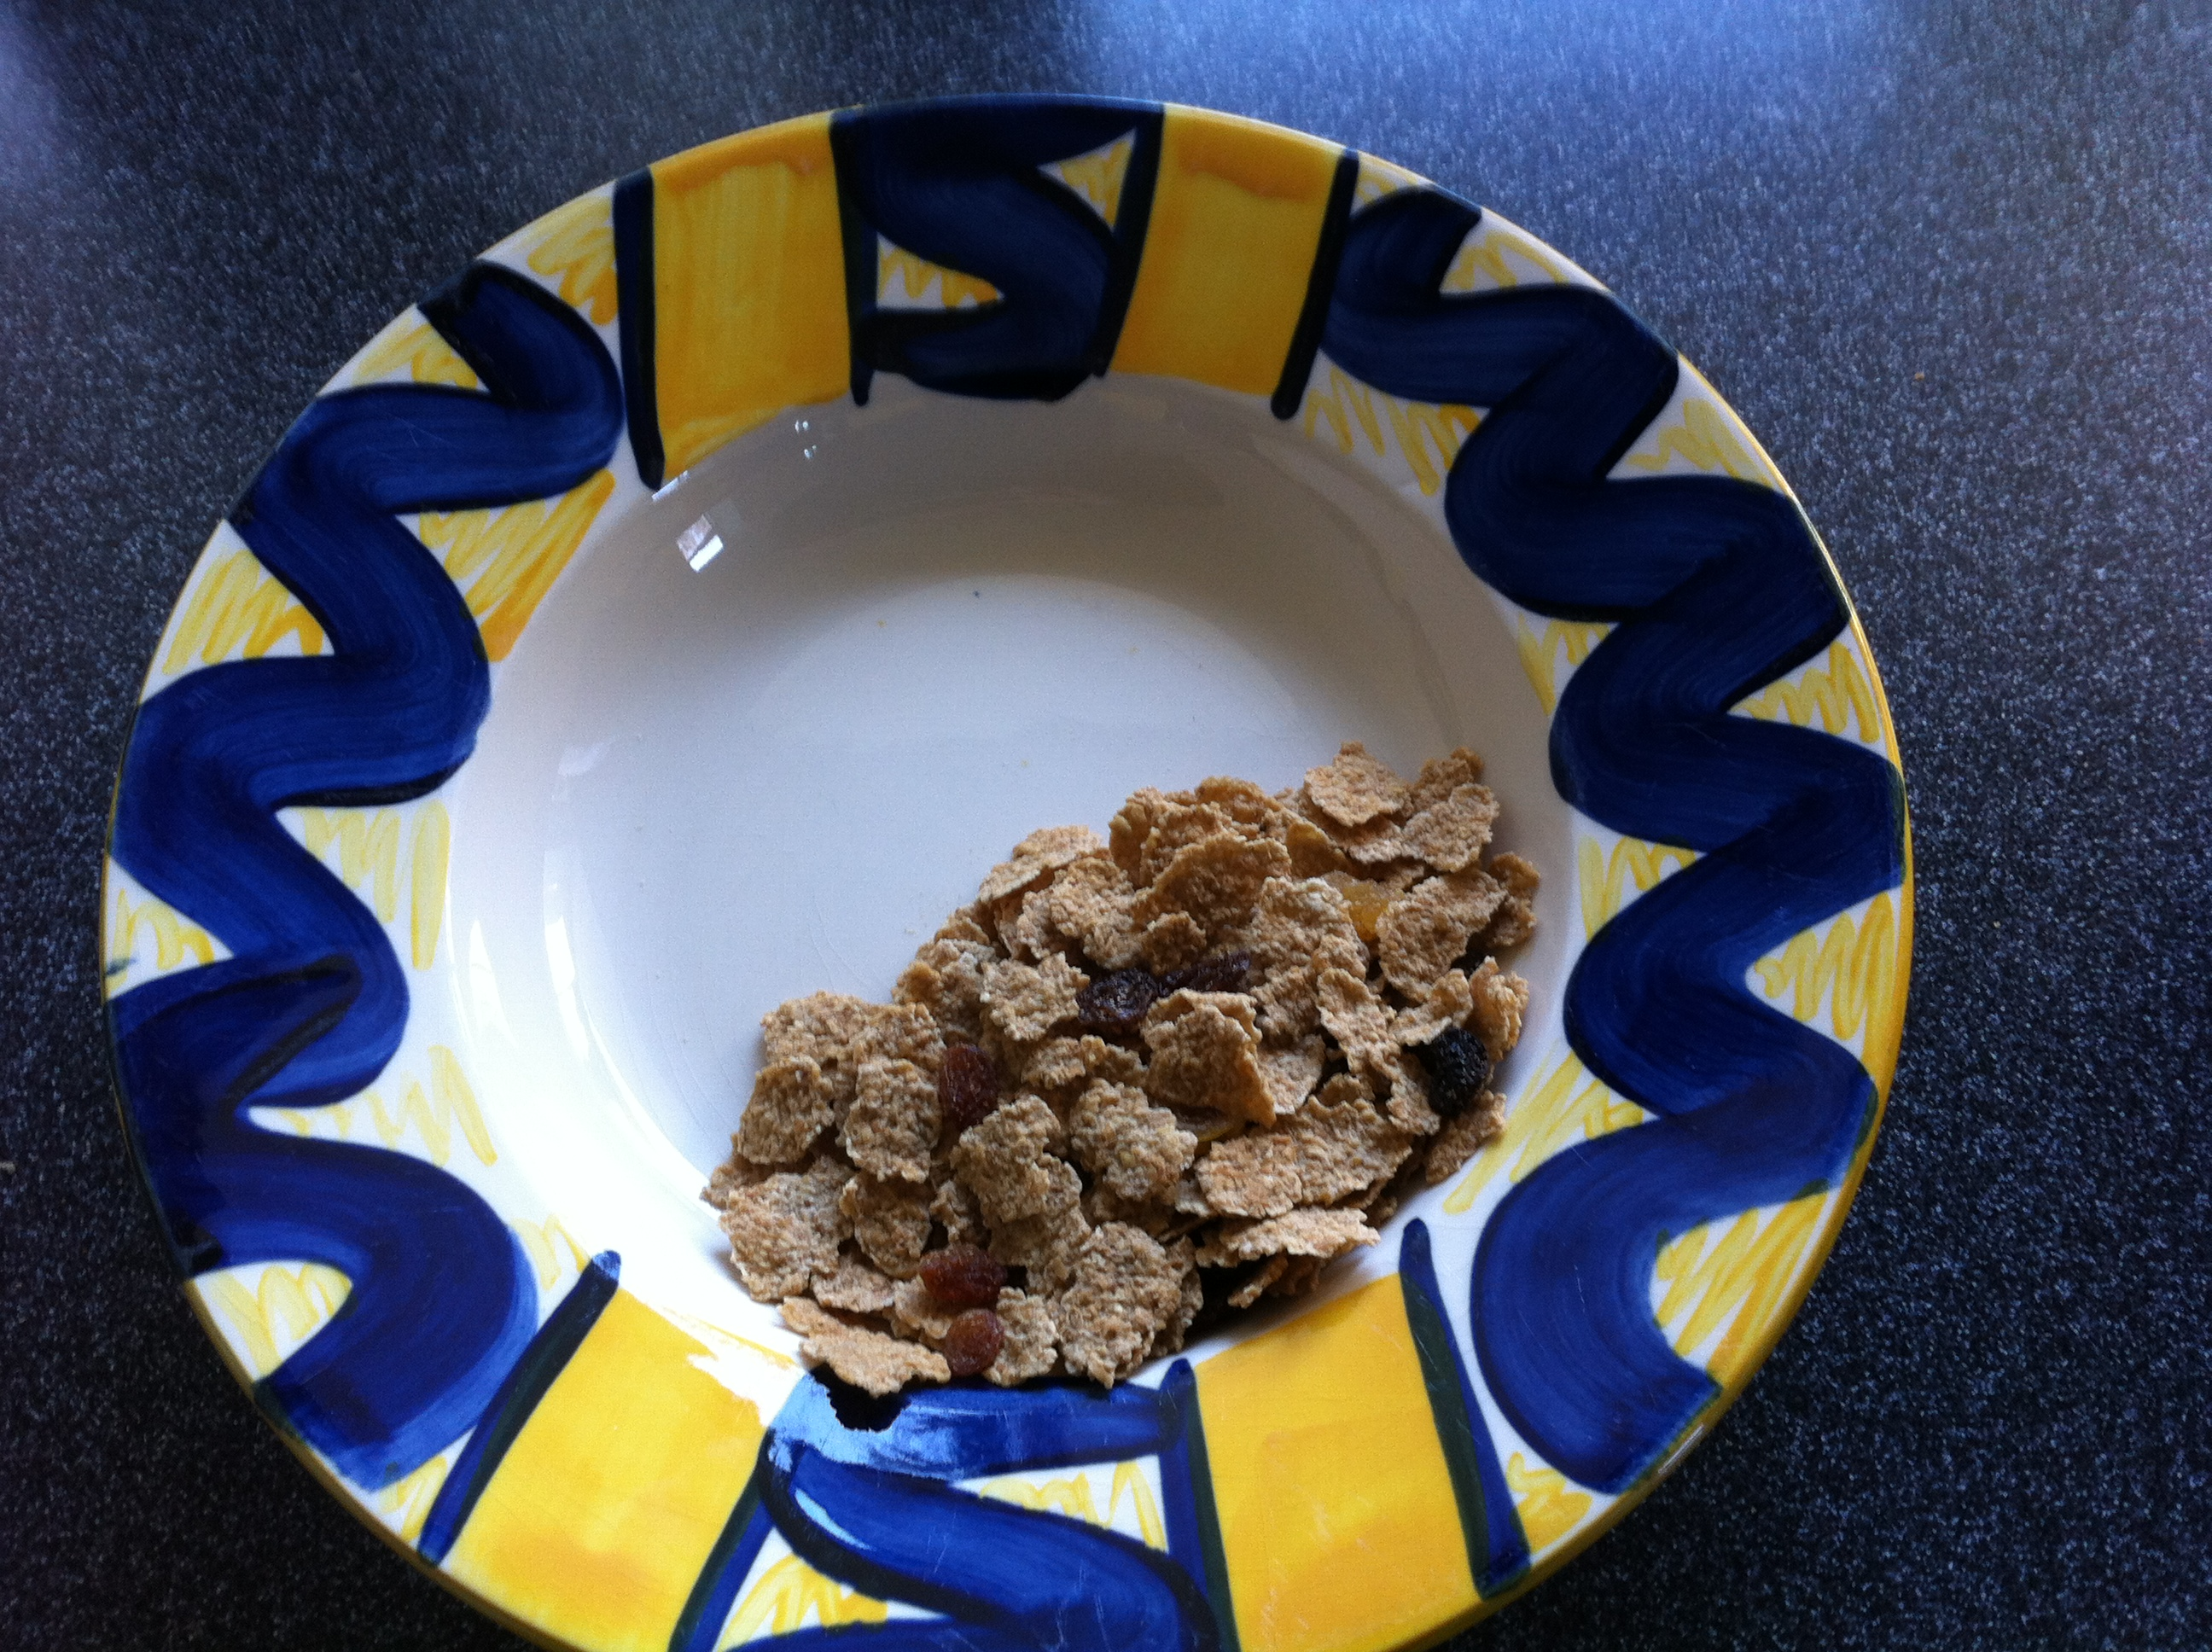 40g of breakfast cereal